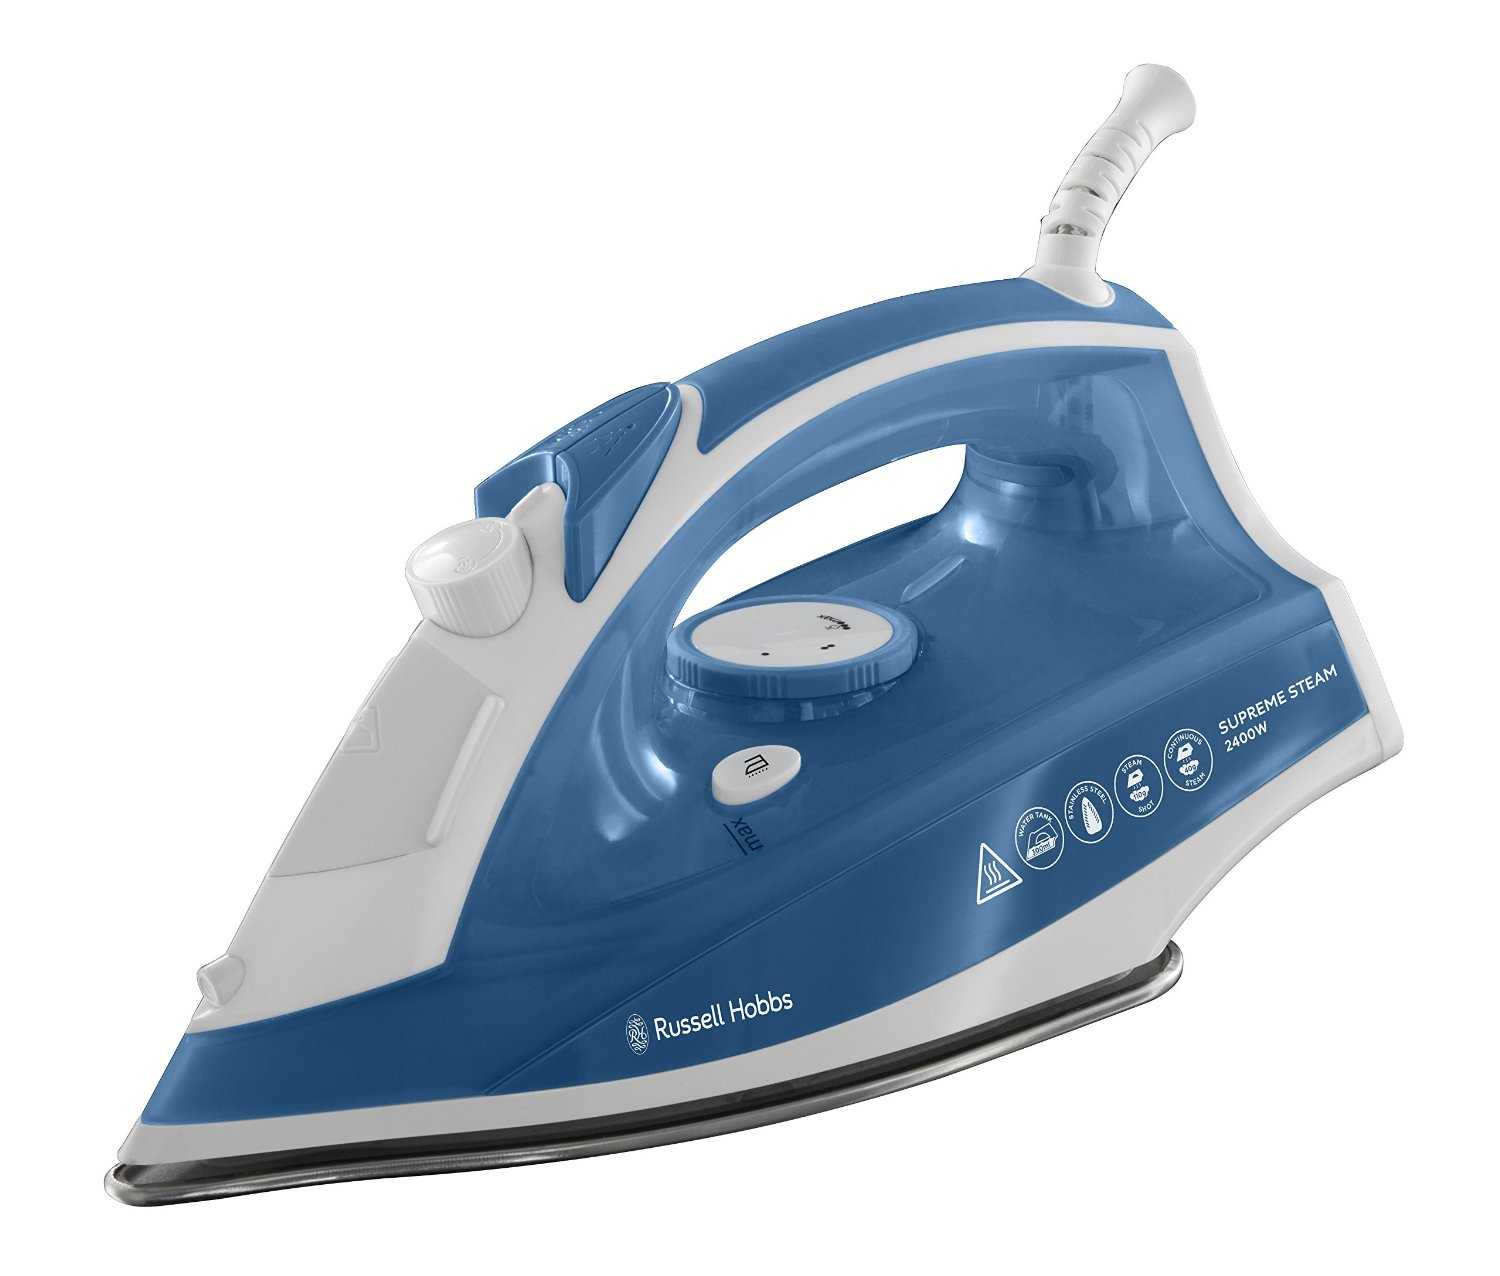 Russell Hobbs 23061 Supreme Steam Traditional Iron